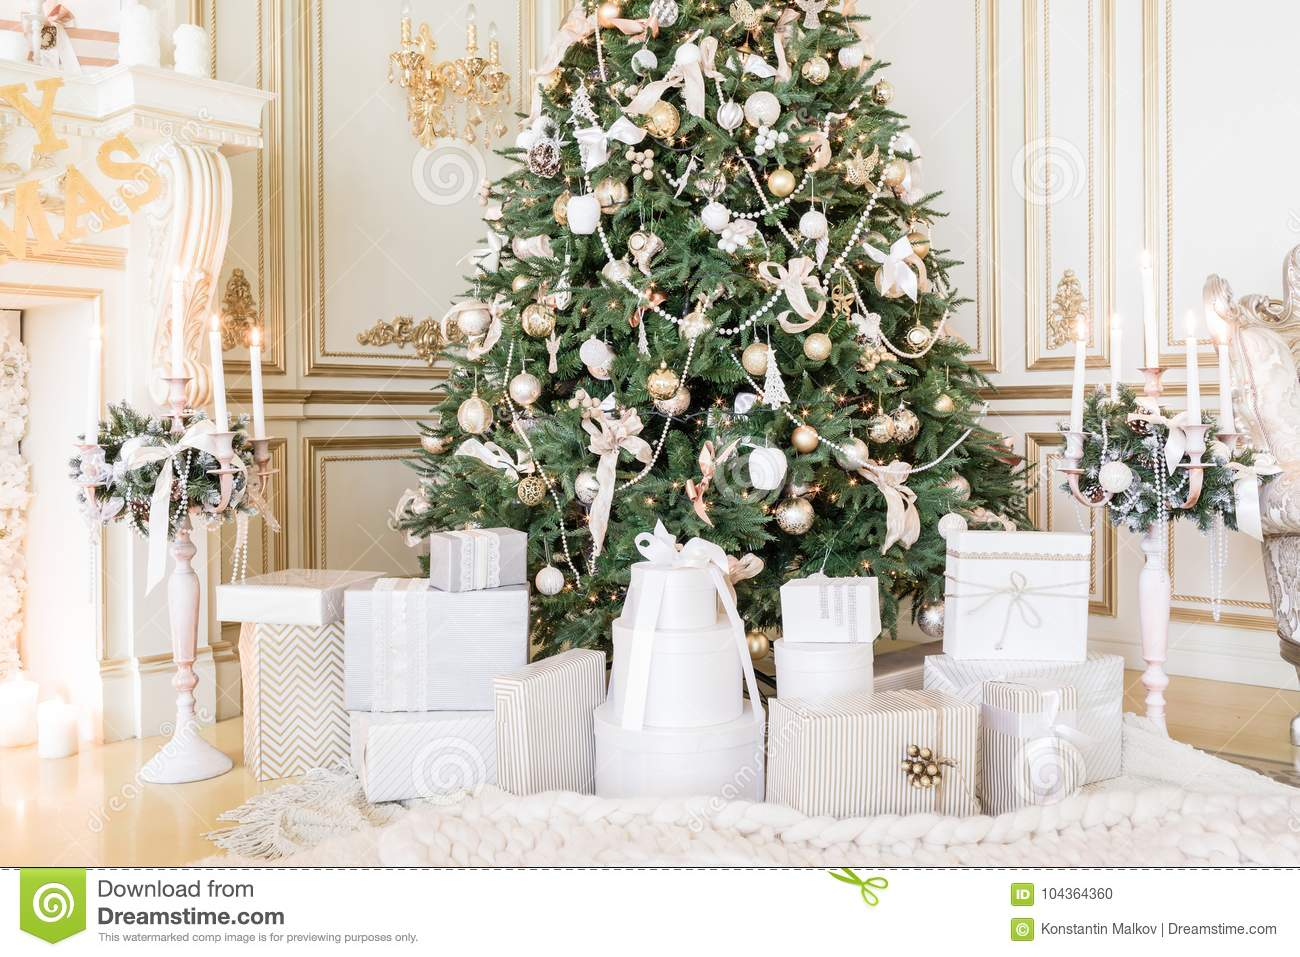 Presents under Christmas Tree in living room. Family Holiday New Year at Home